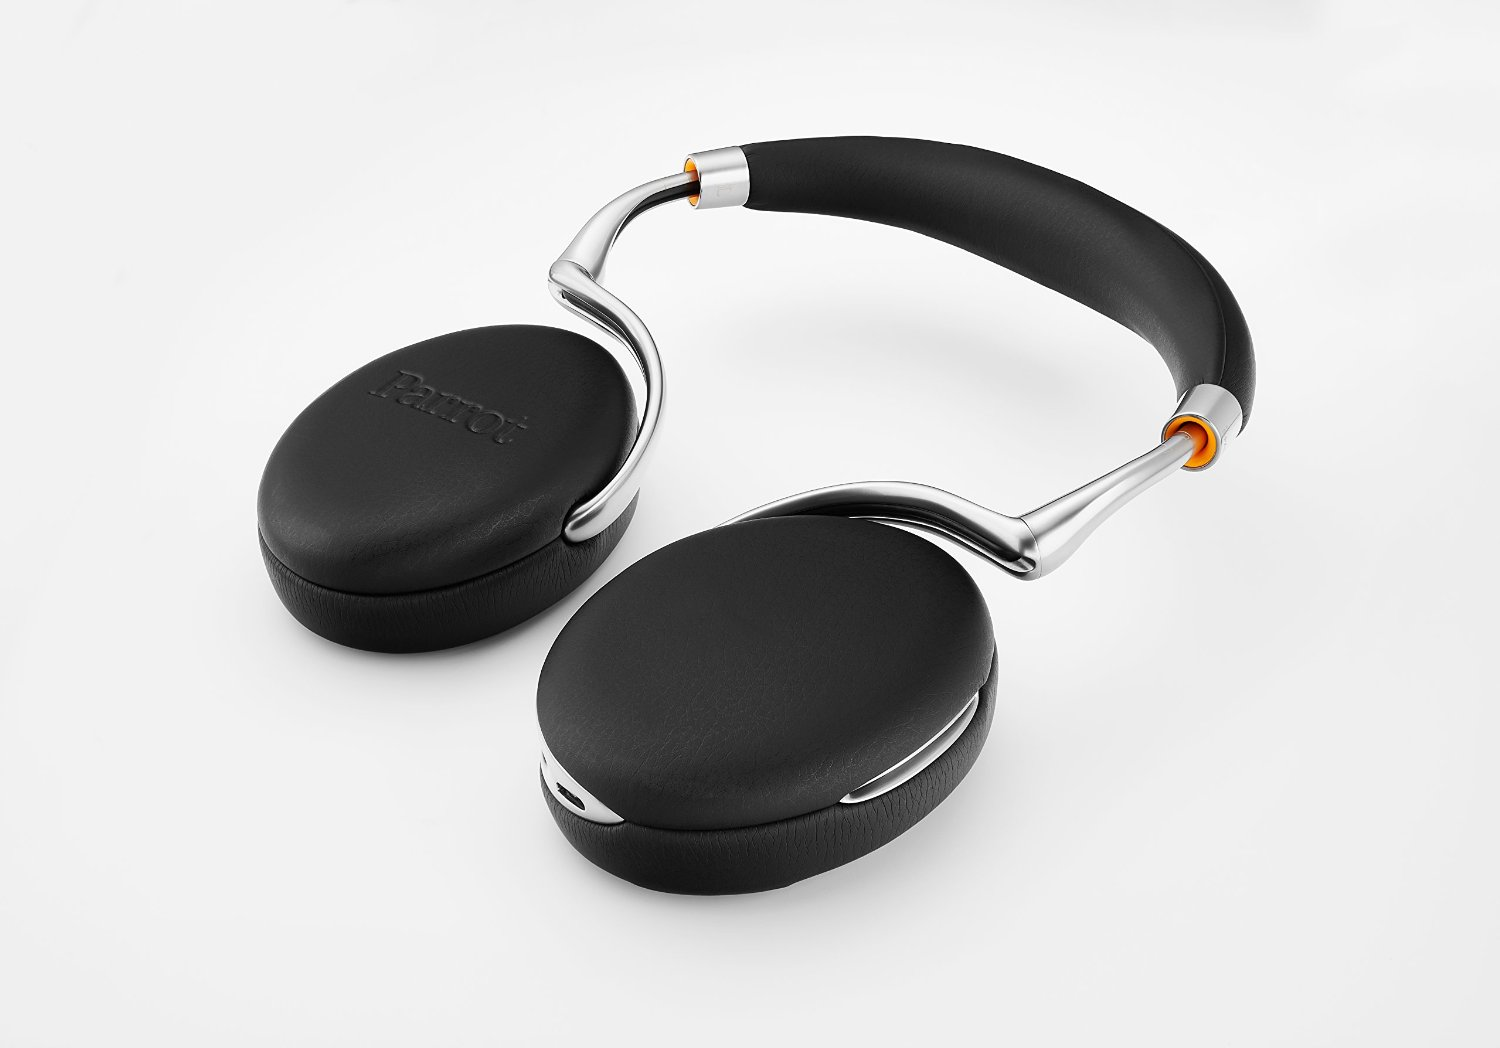 8adc85fa562 Parrot Zik 3 - Black Leather-grain - Walmart.com